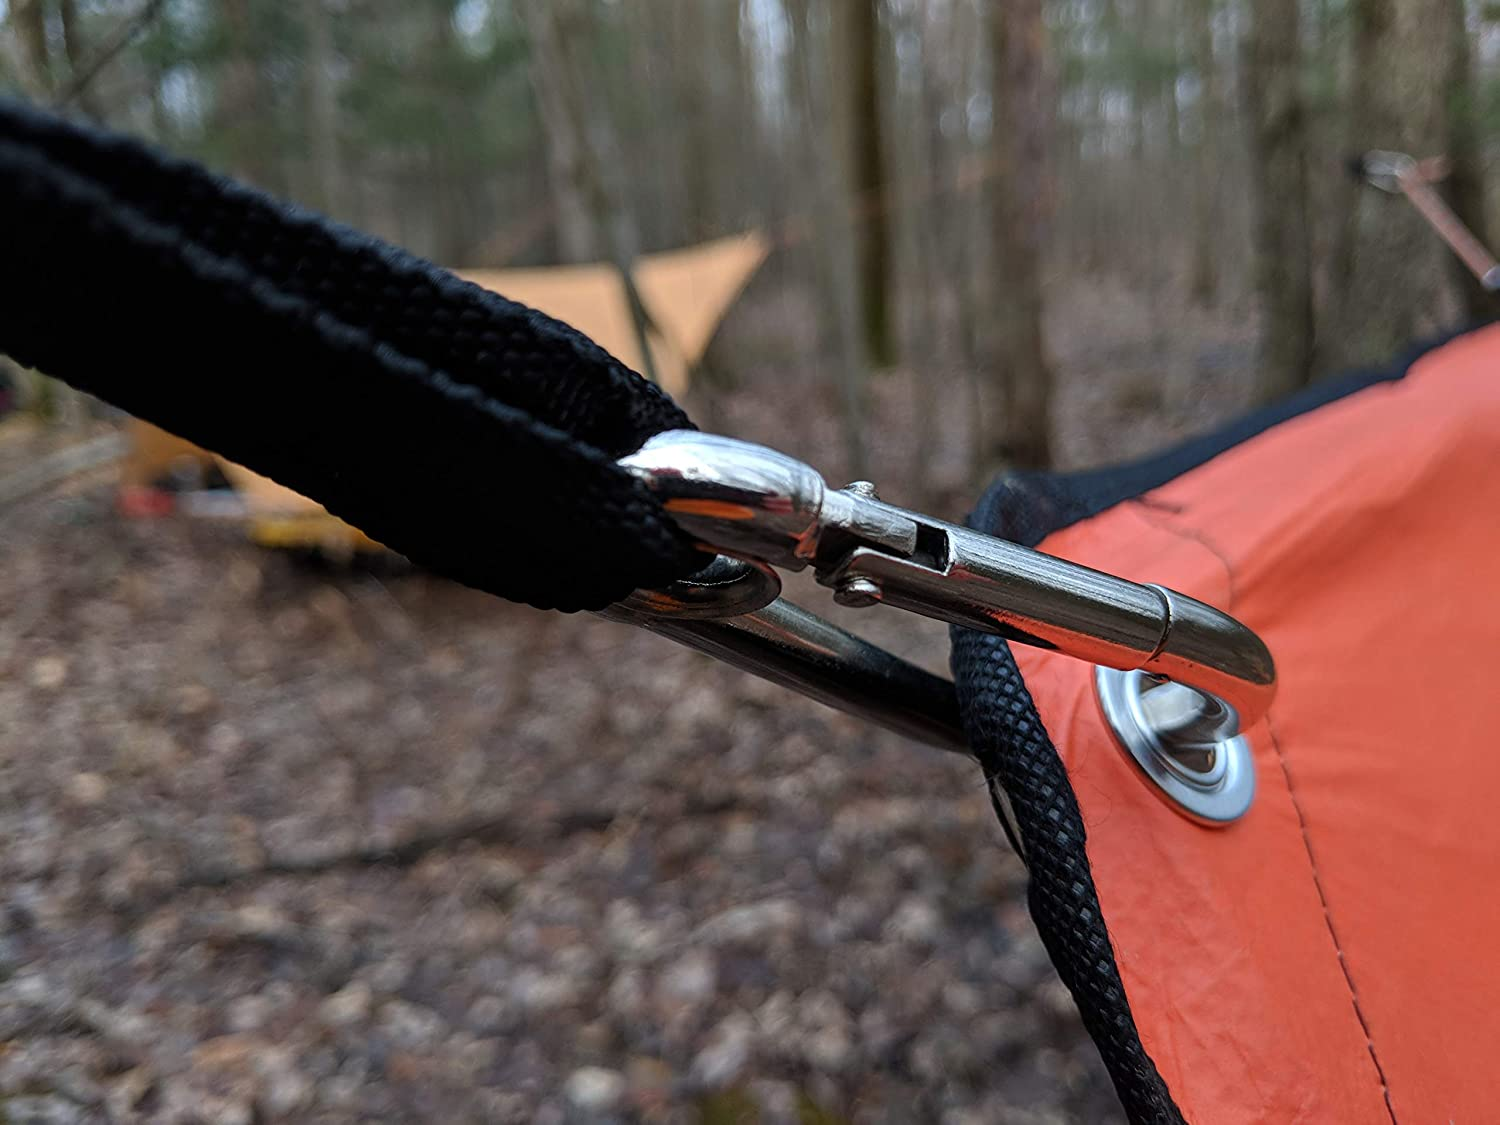 Camping Backpacking Flat Design and Carabiner Ends for Hiking Campsite Organization and Outdoor Survival UST KLIPP Strap Tie Down with Durable